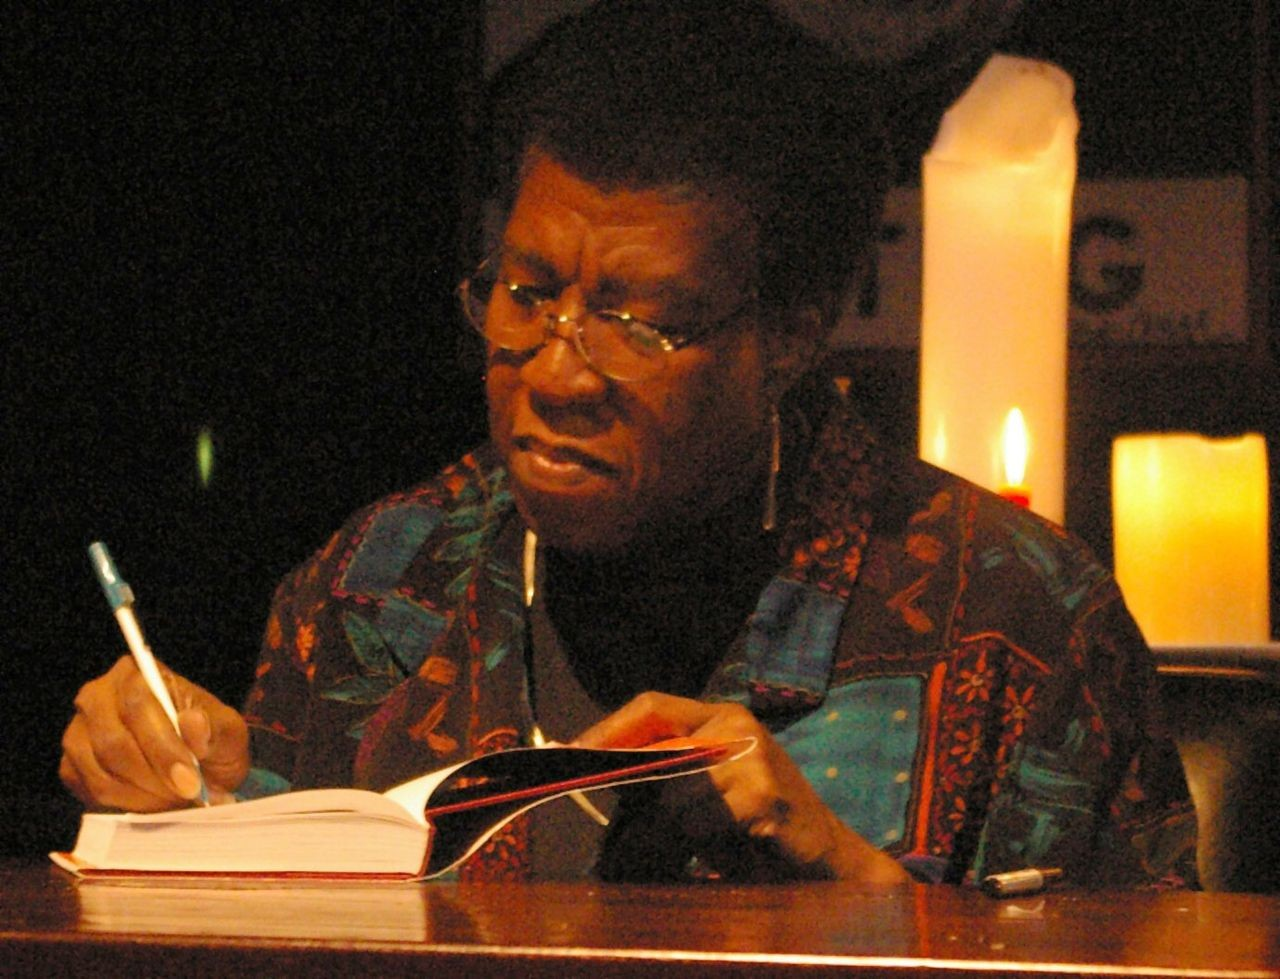 Octavia E. Butler: A Pioneering and Prescient Science-Fiction Legacy